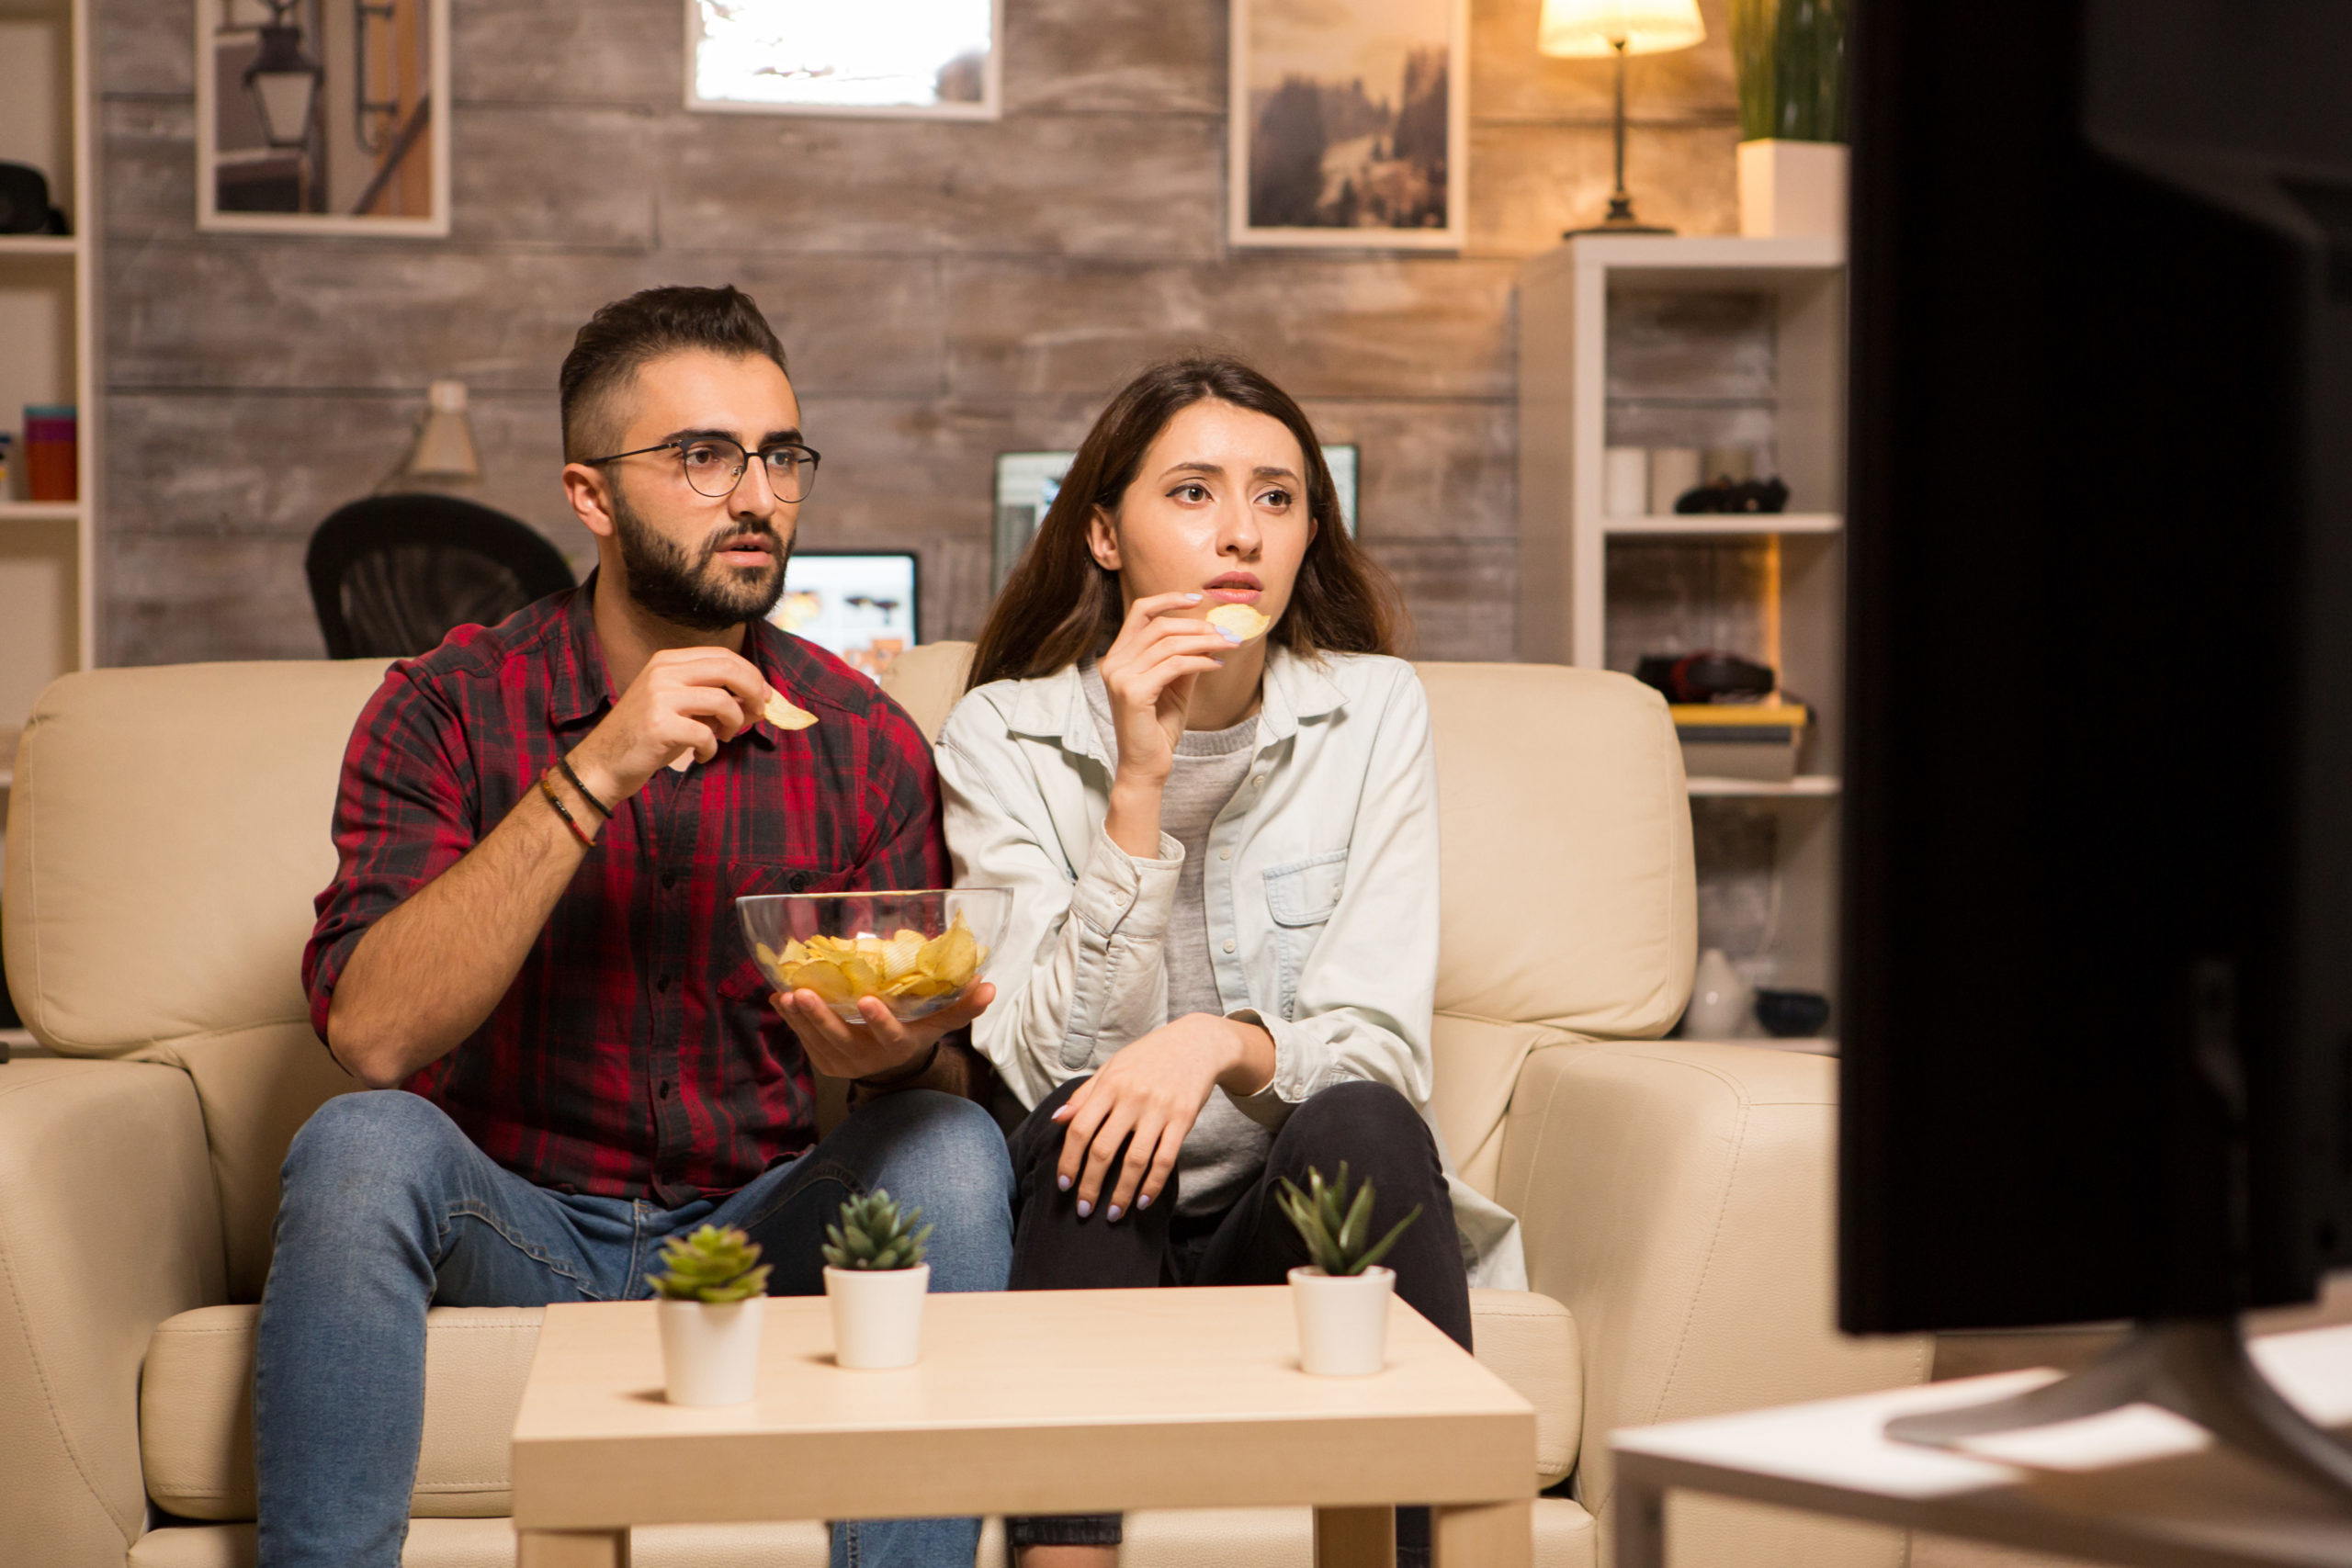 Why can't I get BBC iPlayer on my Samsung Smart TV? https://elements.envato.com/beautiful-young-couple-looking-worried-at-tv-WCGE87A